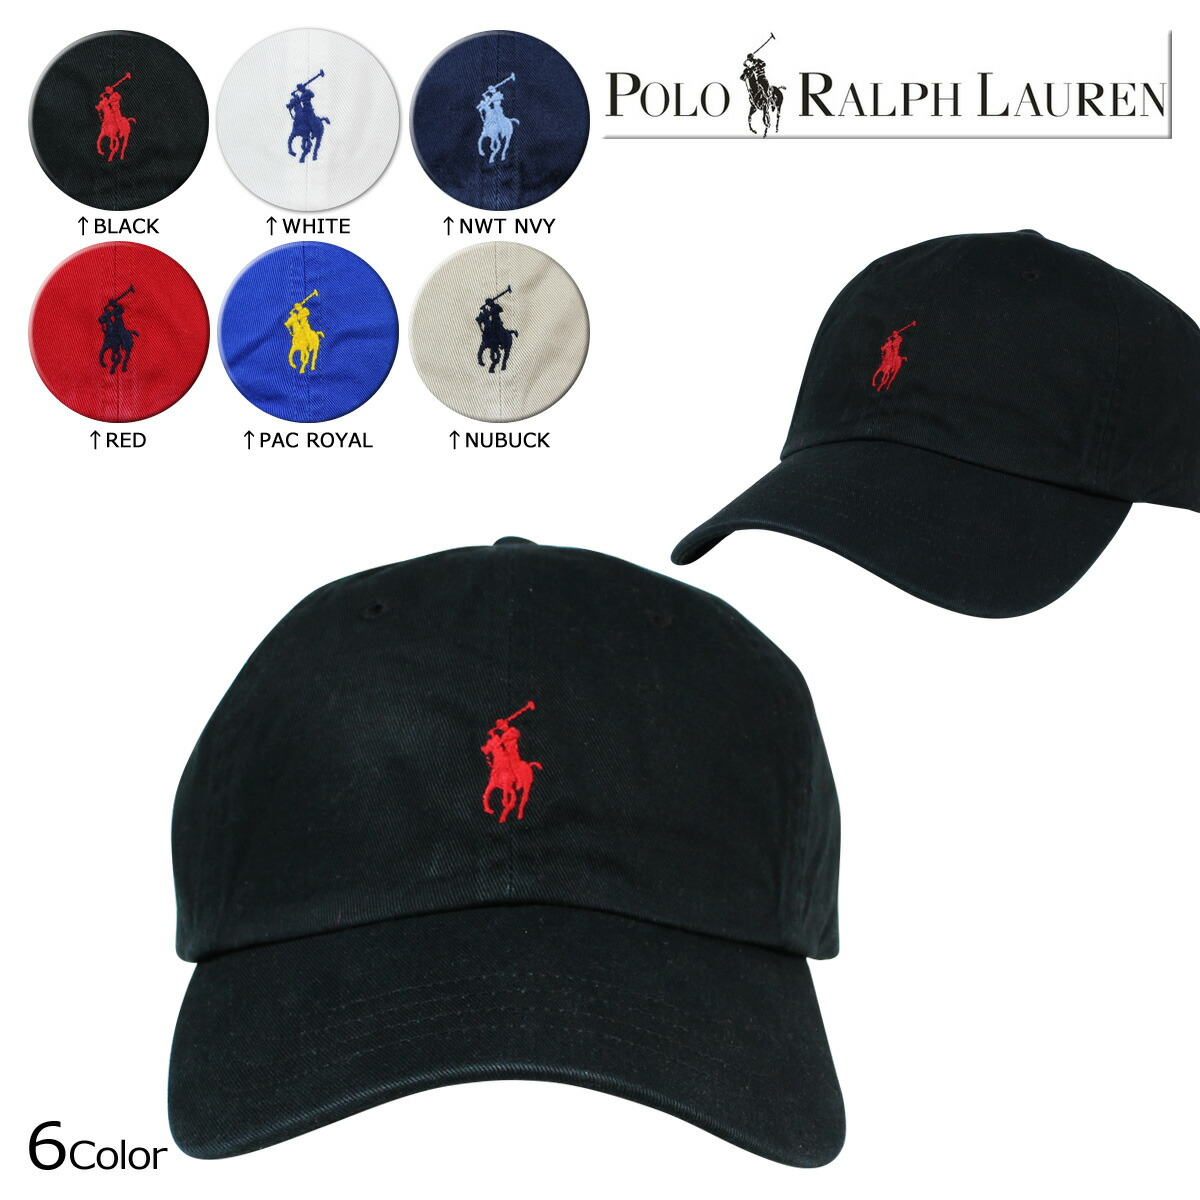 Polo Ralph Lauren Cap Dad Hats Men Women. Polo Ralph Lauren Cap Low Lady S  Men Uni Kids Hat Pony Logo Embroidery ... 9bc8a7707ea7